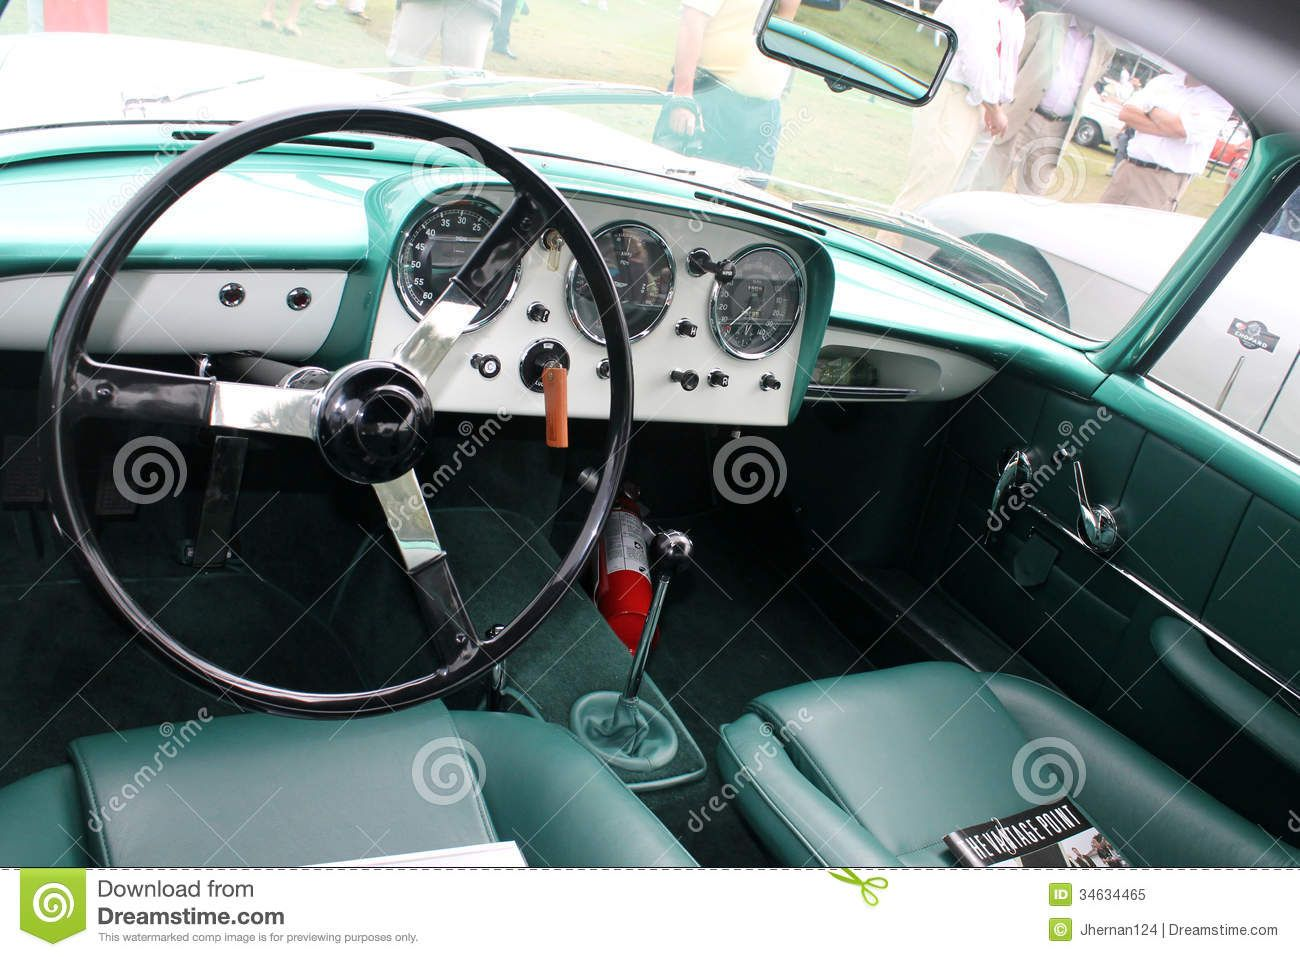 classic car dashboards - Google Search | Dashboards | Pinterest ...